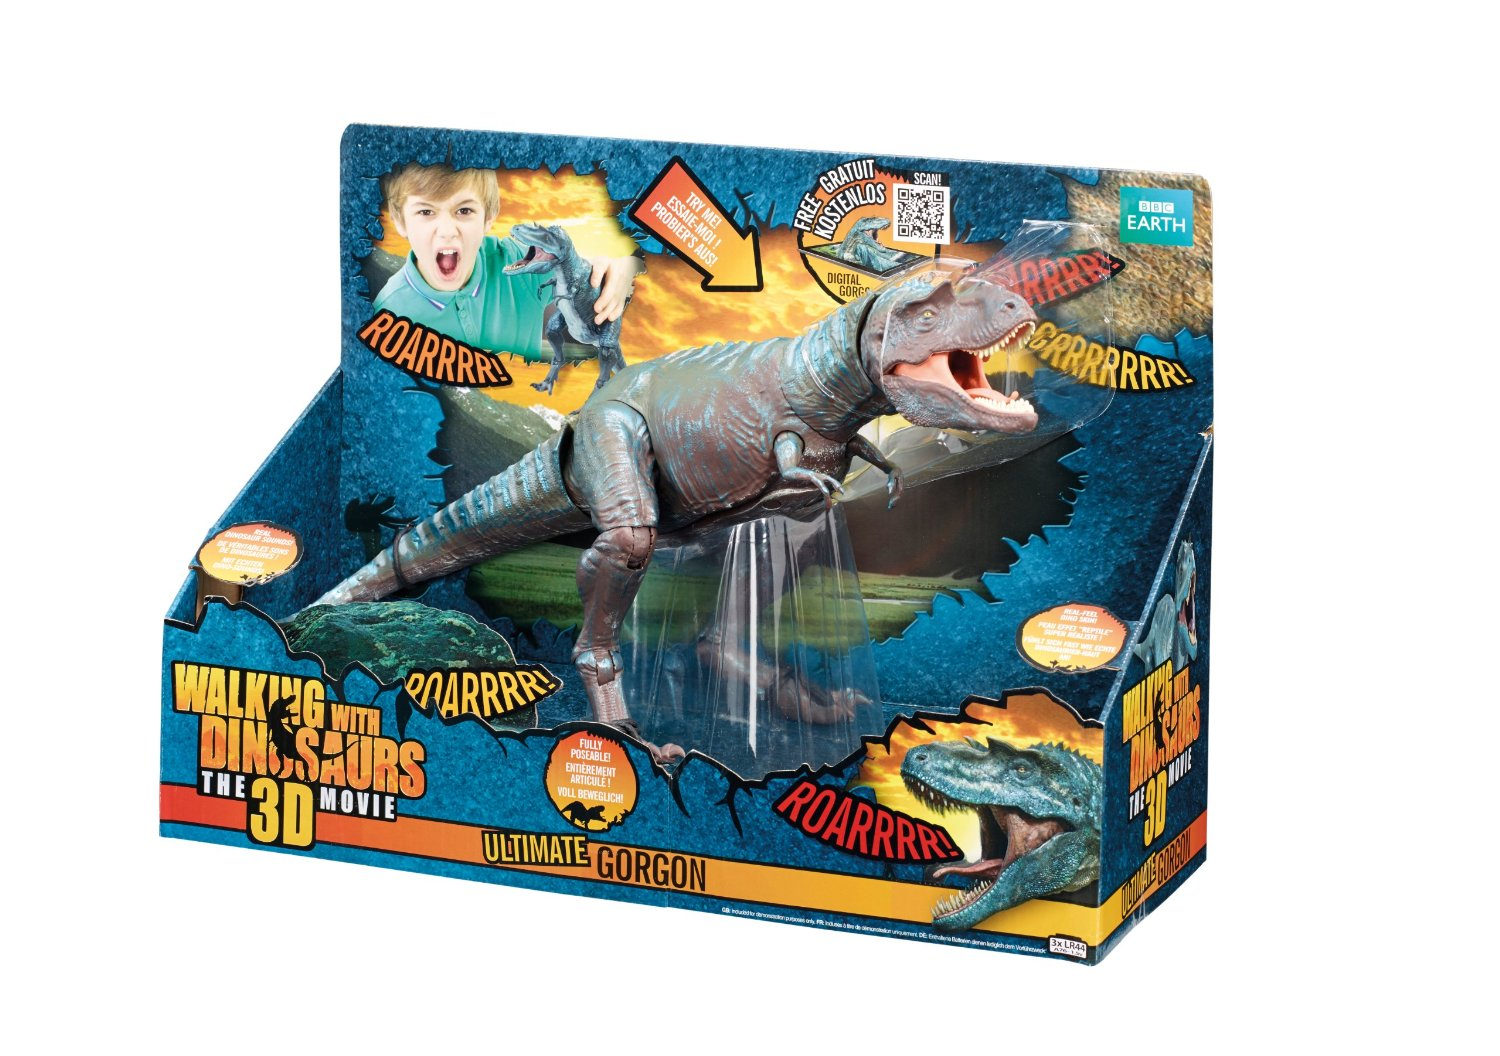 "Walking With Dinosaurs 3d Toys Gorgon WWD 12"" ULTIMATE ..."